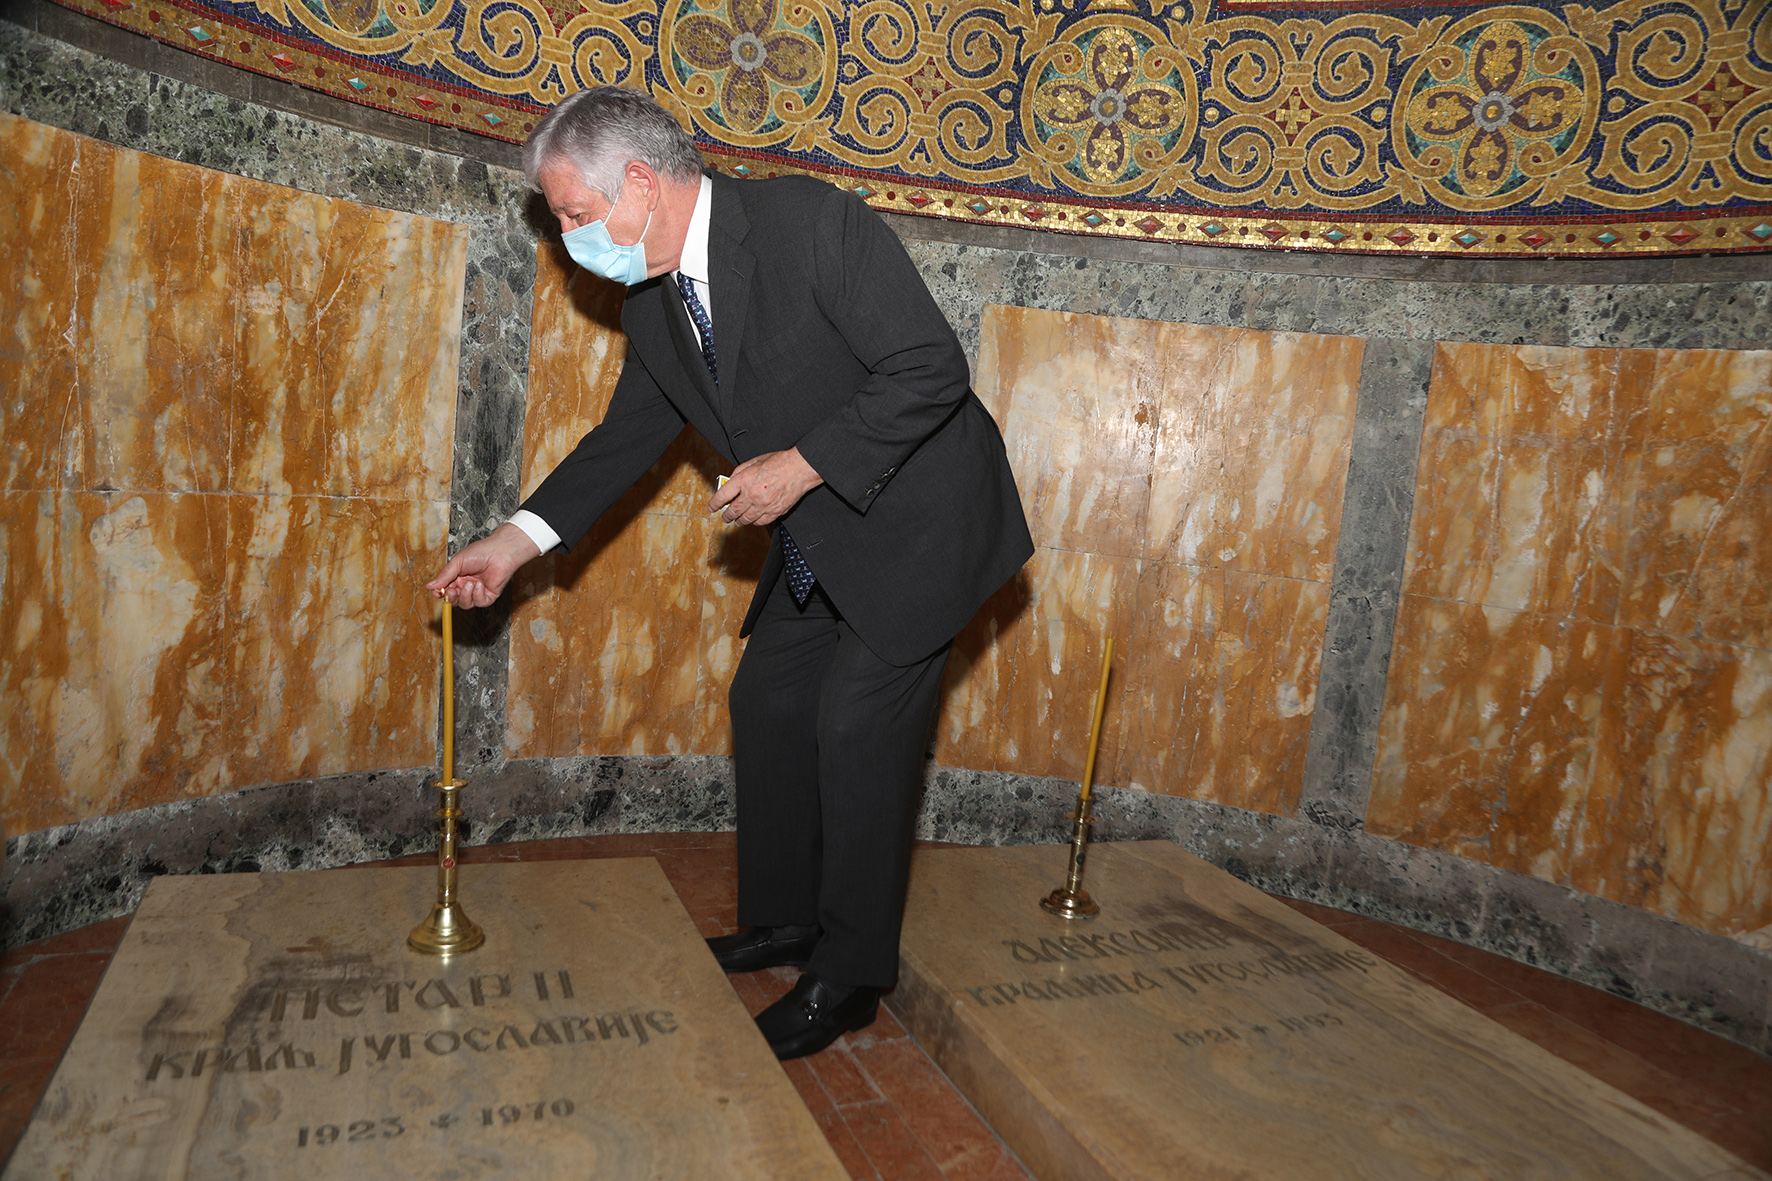 HRH Crown Prince Alexander lighting a candle on the grave of his father, HM King Peter II